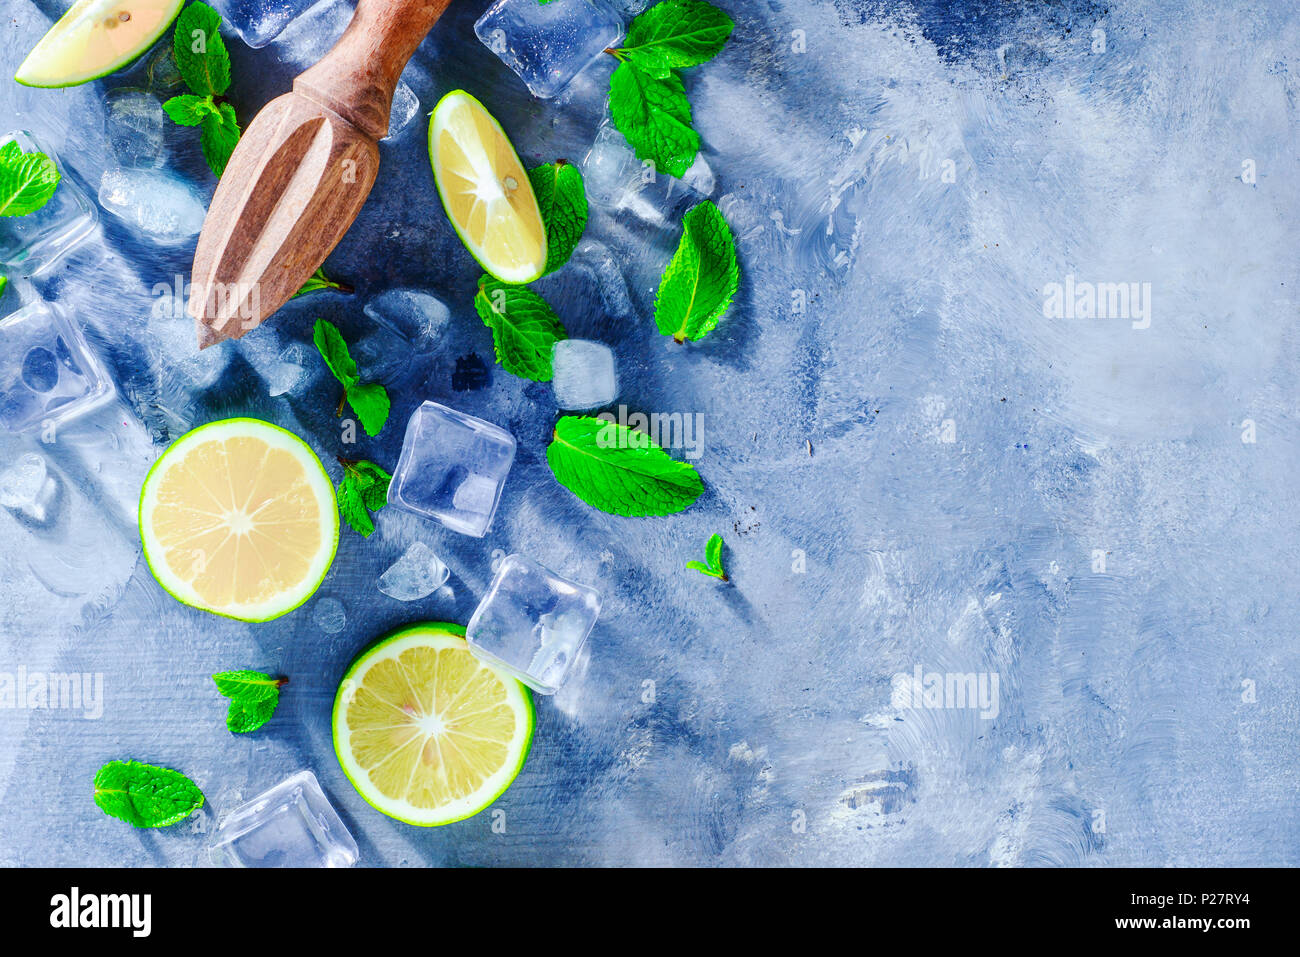 Summer drink header with mojito cocktail ingredients, mint, lime and ice cubes. Lemon reamer or juicer on a gray stone background with copy space. - Stock Image